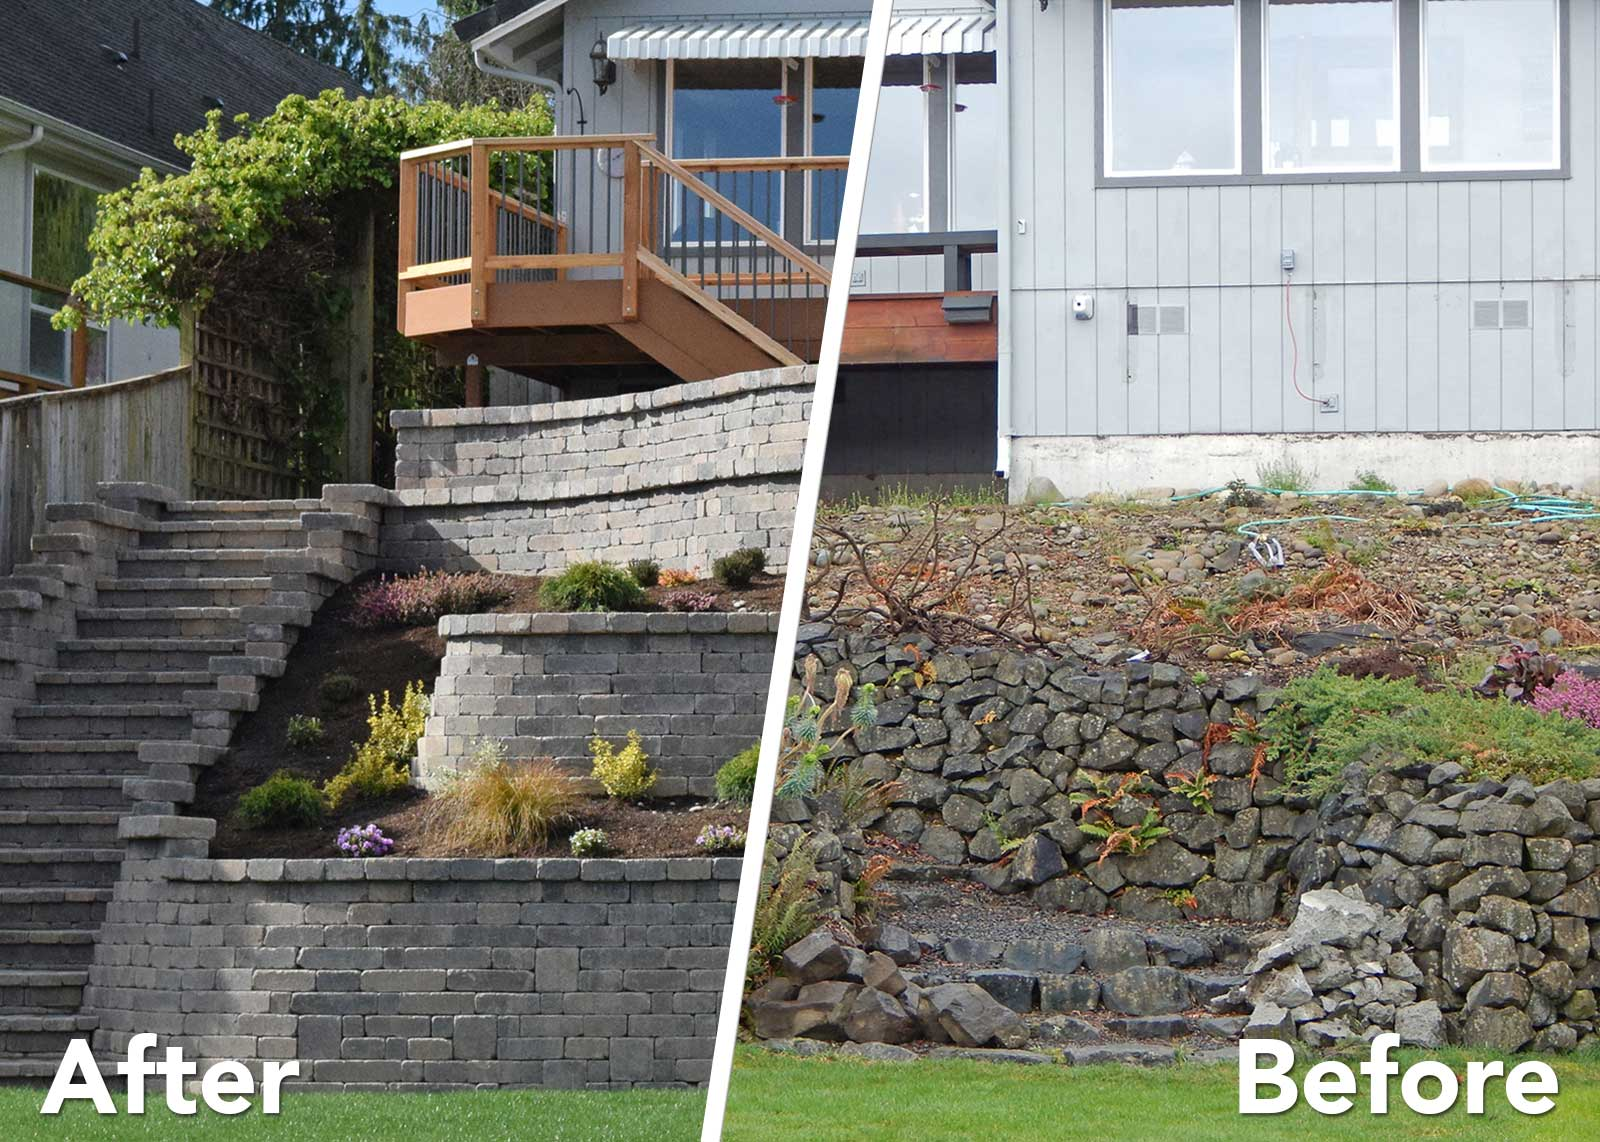 Tiered retaining wall on lake lawrence near yelm ajb for Garden decking before and after